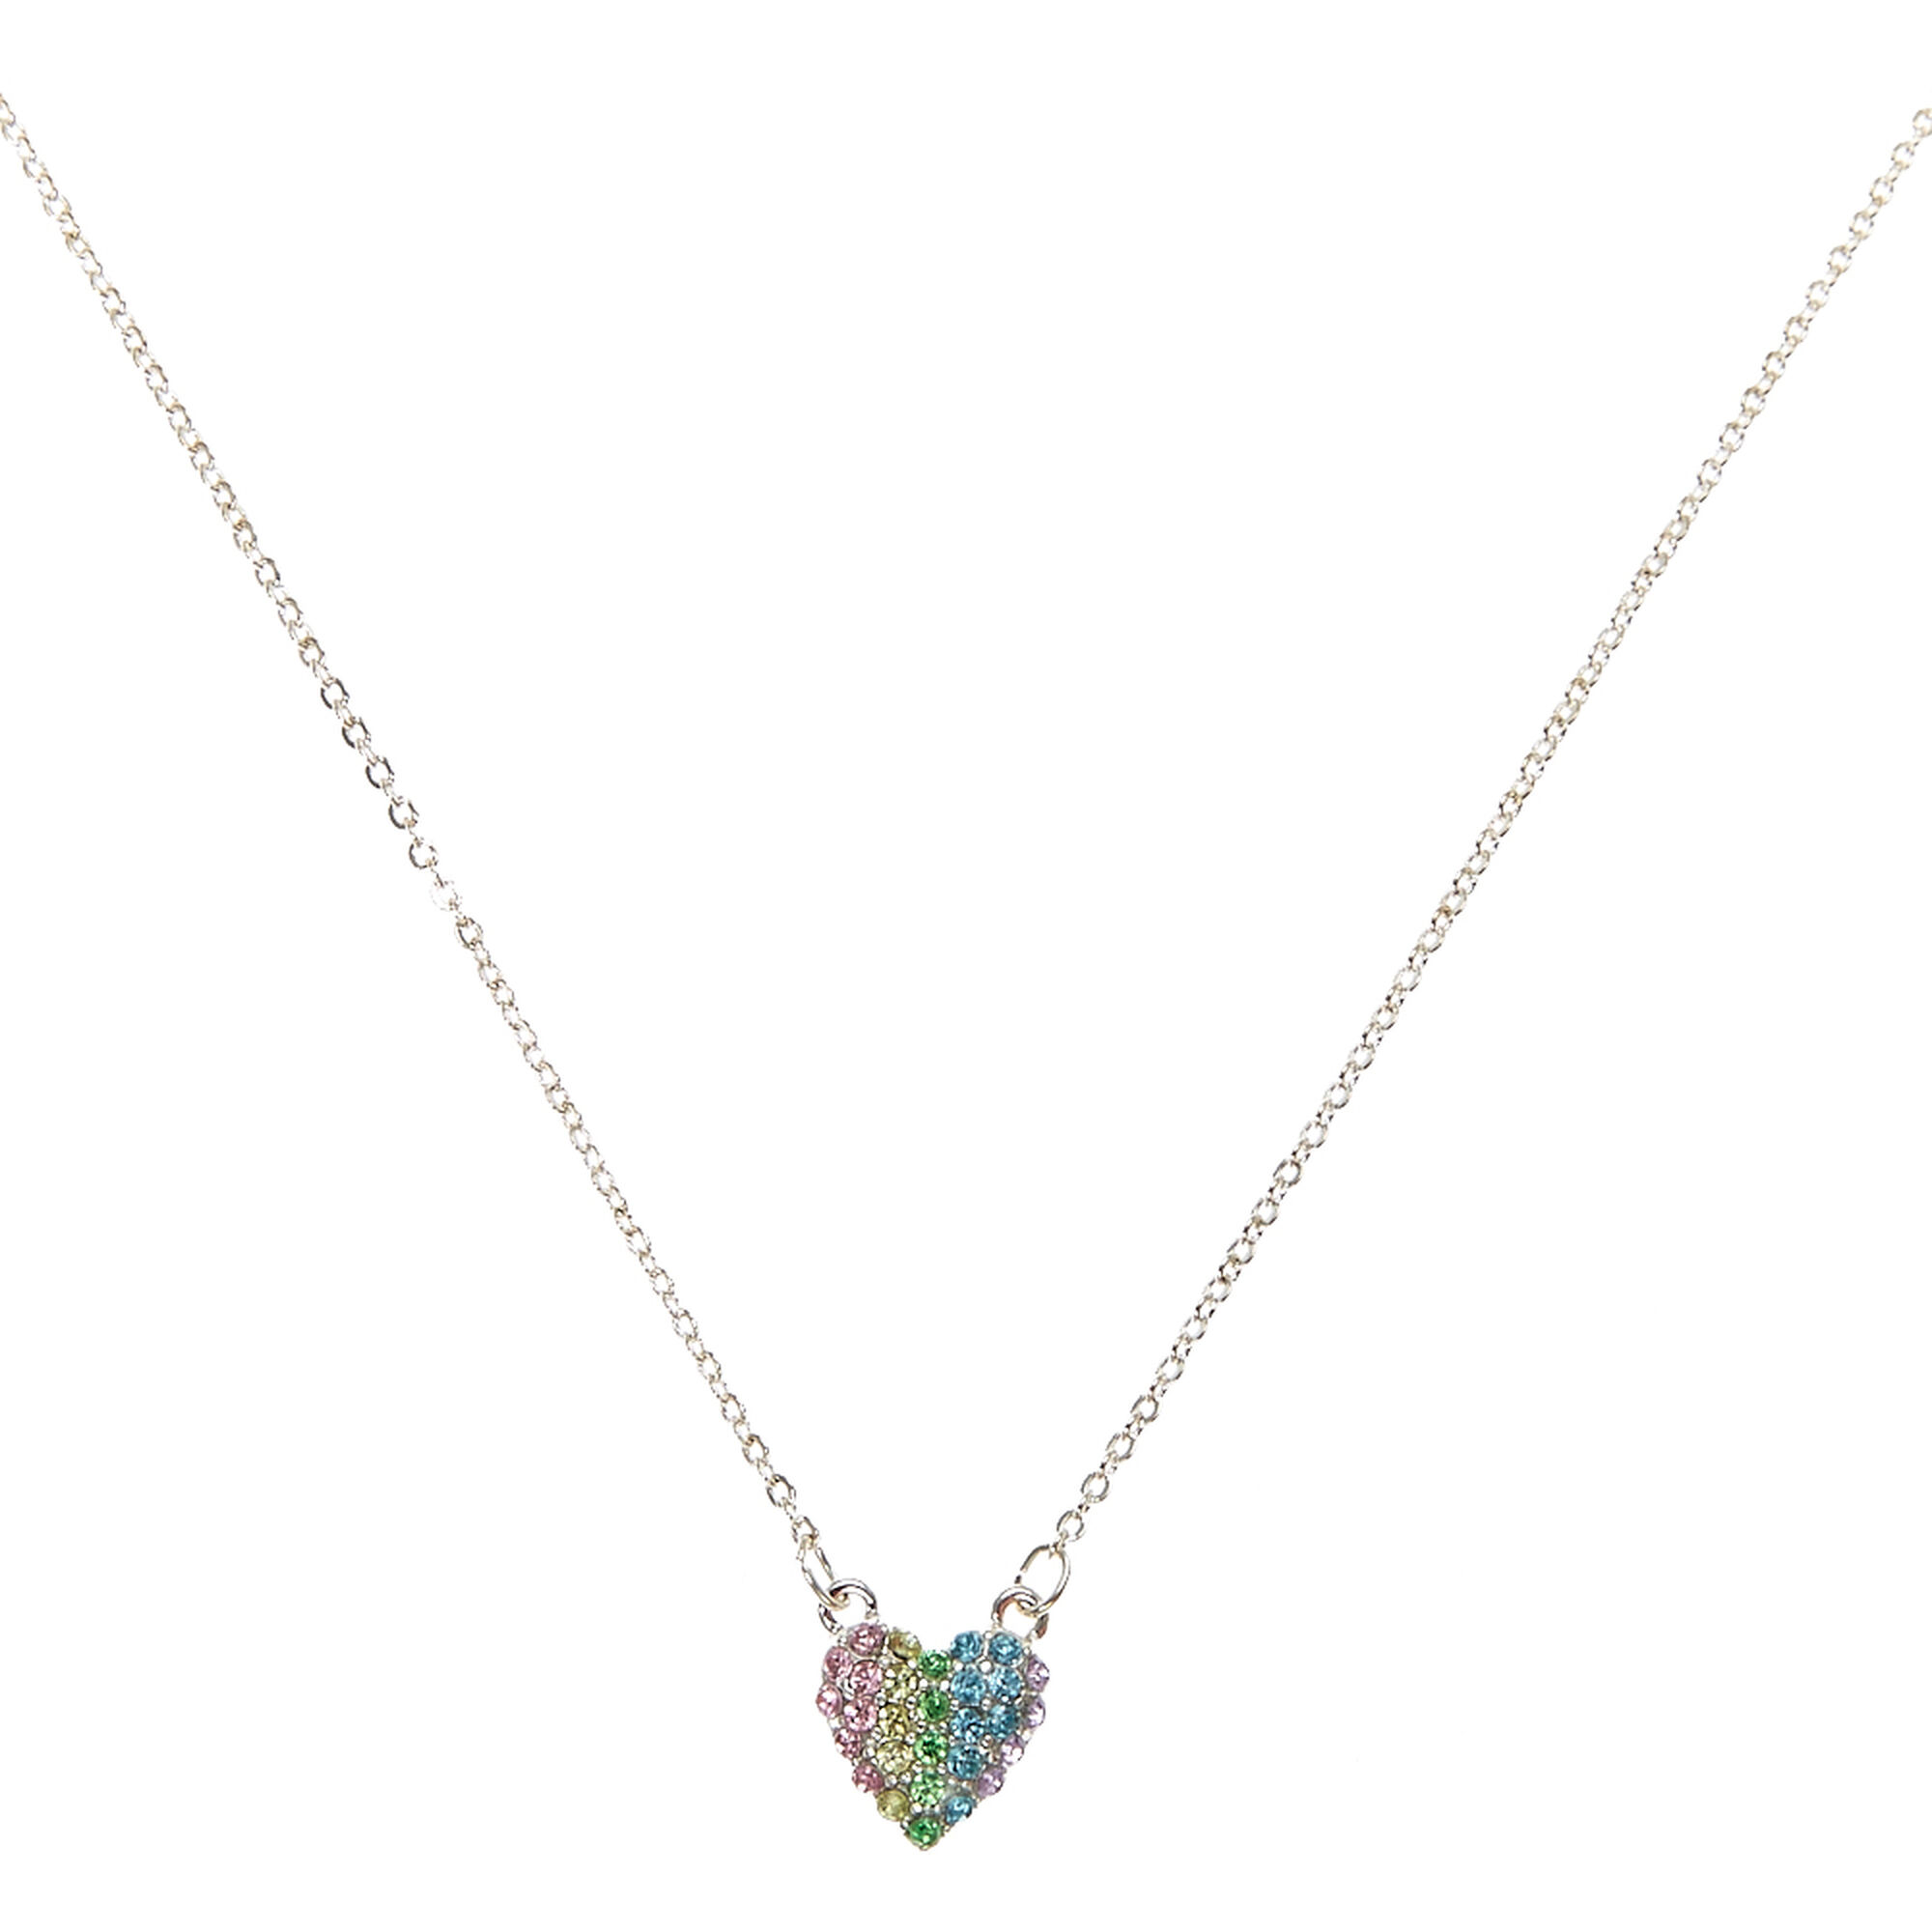 Pastel crystal tiny heart pendant necklace claires us pastel crystal tiny heart pendant necklace mozeypictures Images